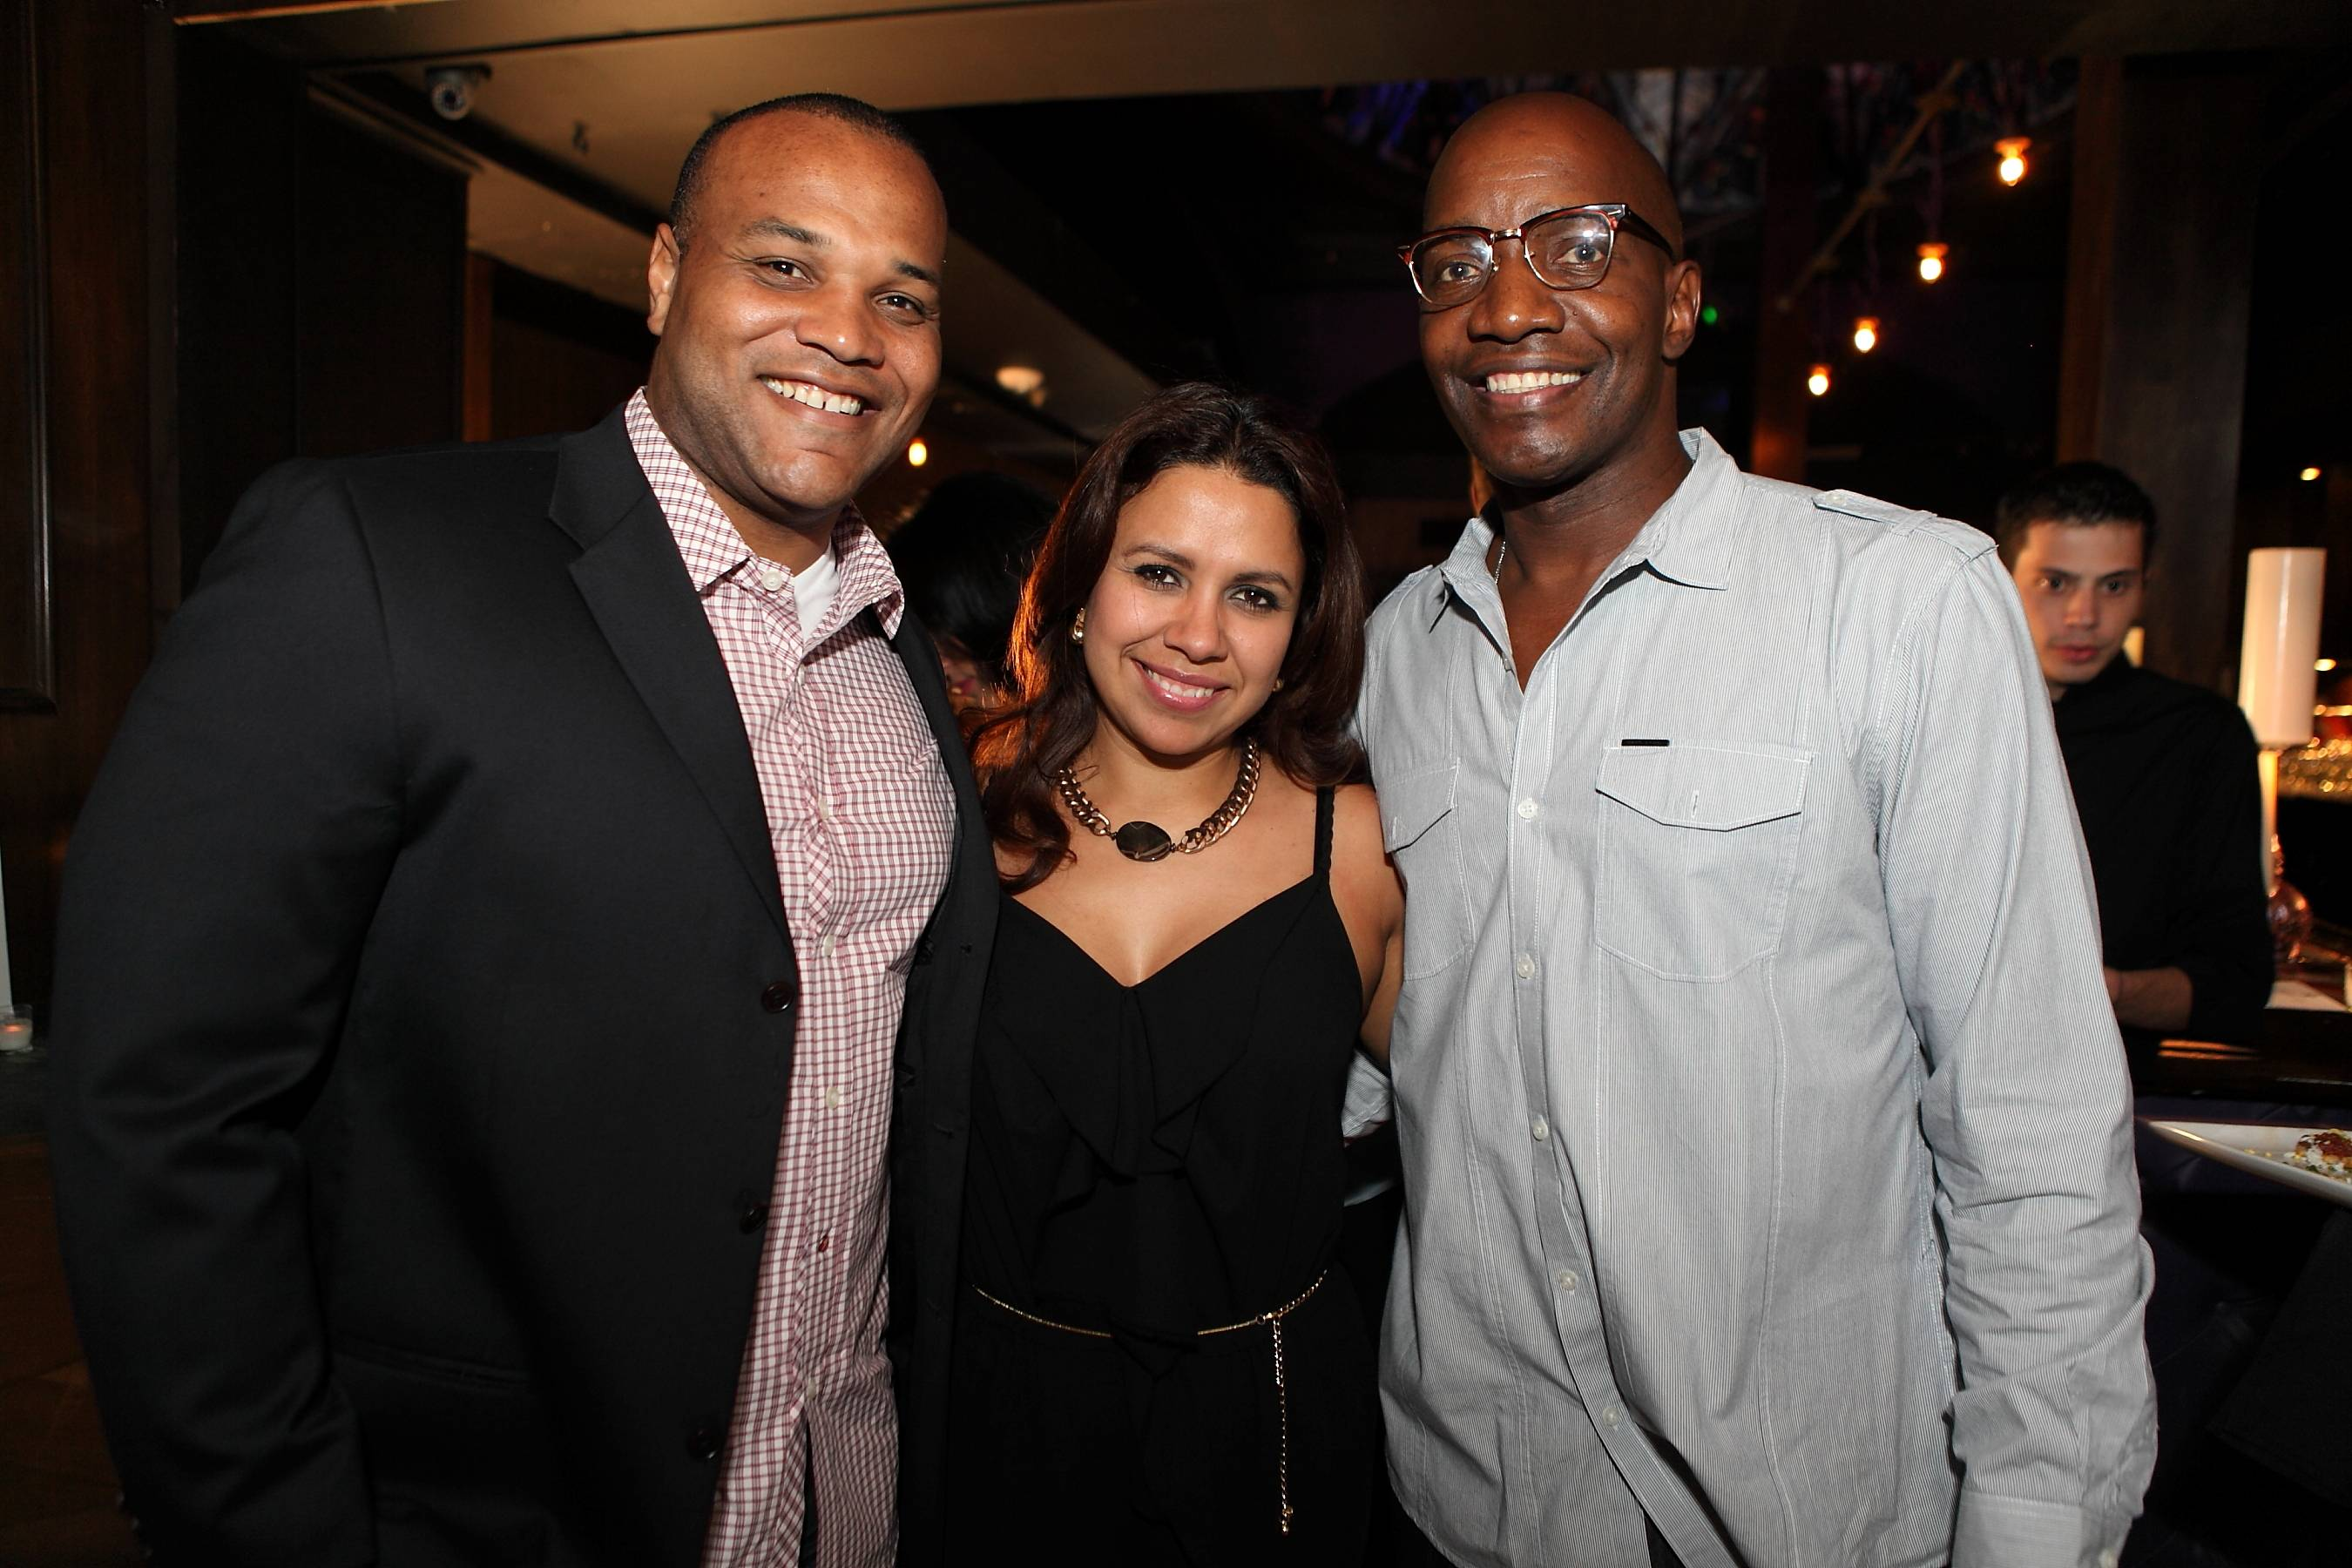 Chris Bell, Soraya ramirez, Kenny Mccraney